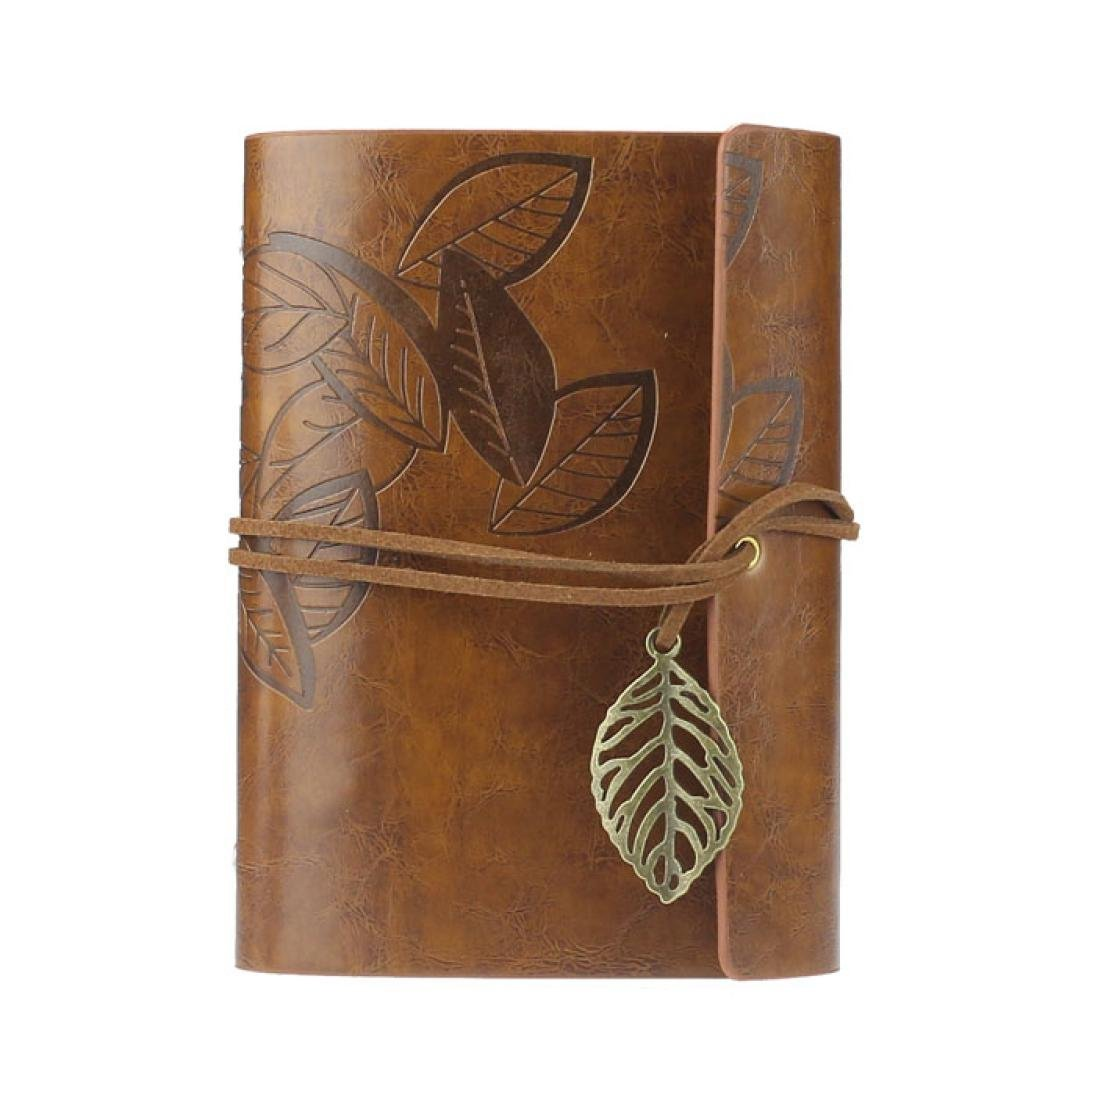 Affordable Vintage Leaf PU Leather Cover Loose Leaf Blank Notebook Journal Diary Pocket Size (Gray) mariyana vintage notebook journal diary magic key string retro leather note book diary notebook leaf leather cover blank